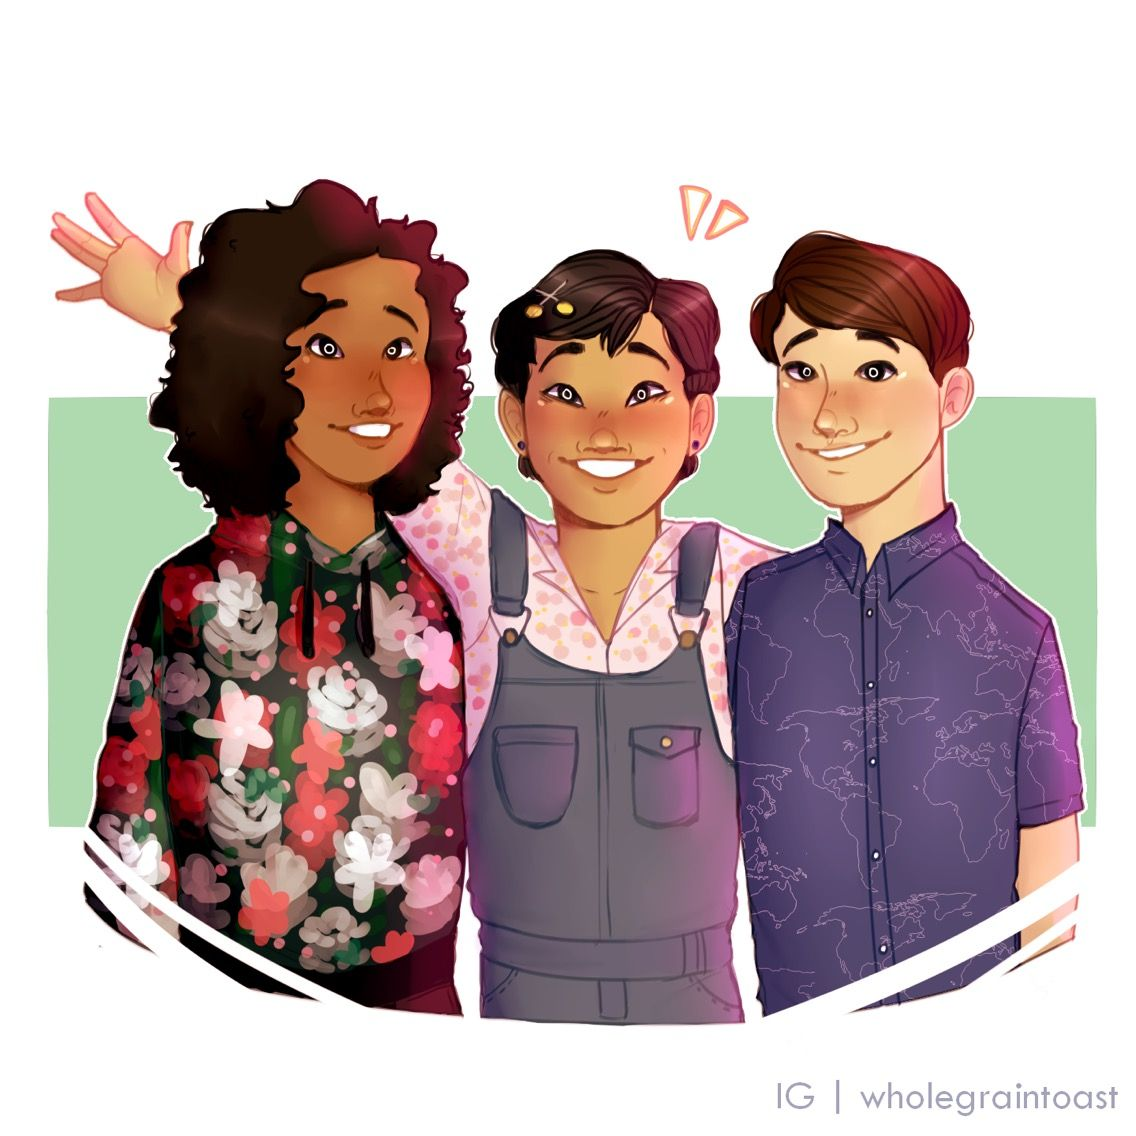 Andi mack clipart png freeuse download Made by the magnificent @wholegraintoast on insta !! Andi Mack Good ... png freeuse download